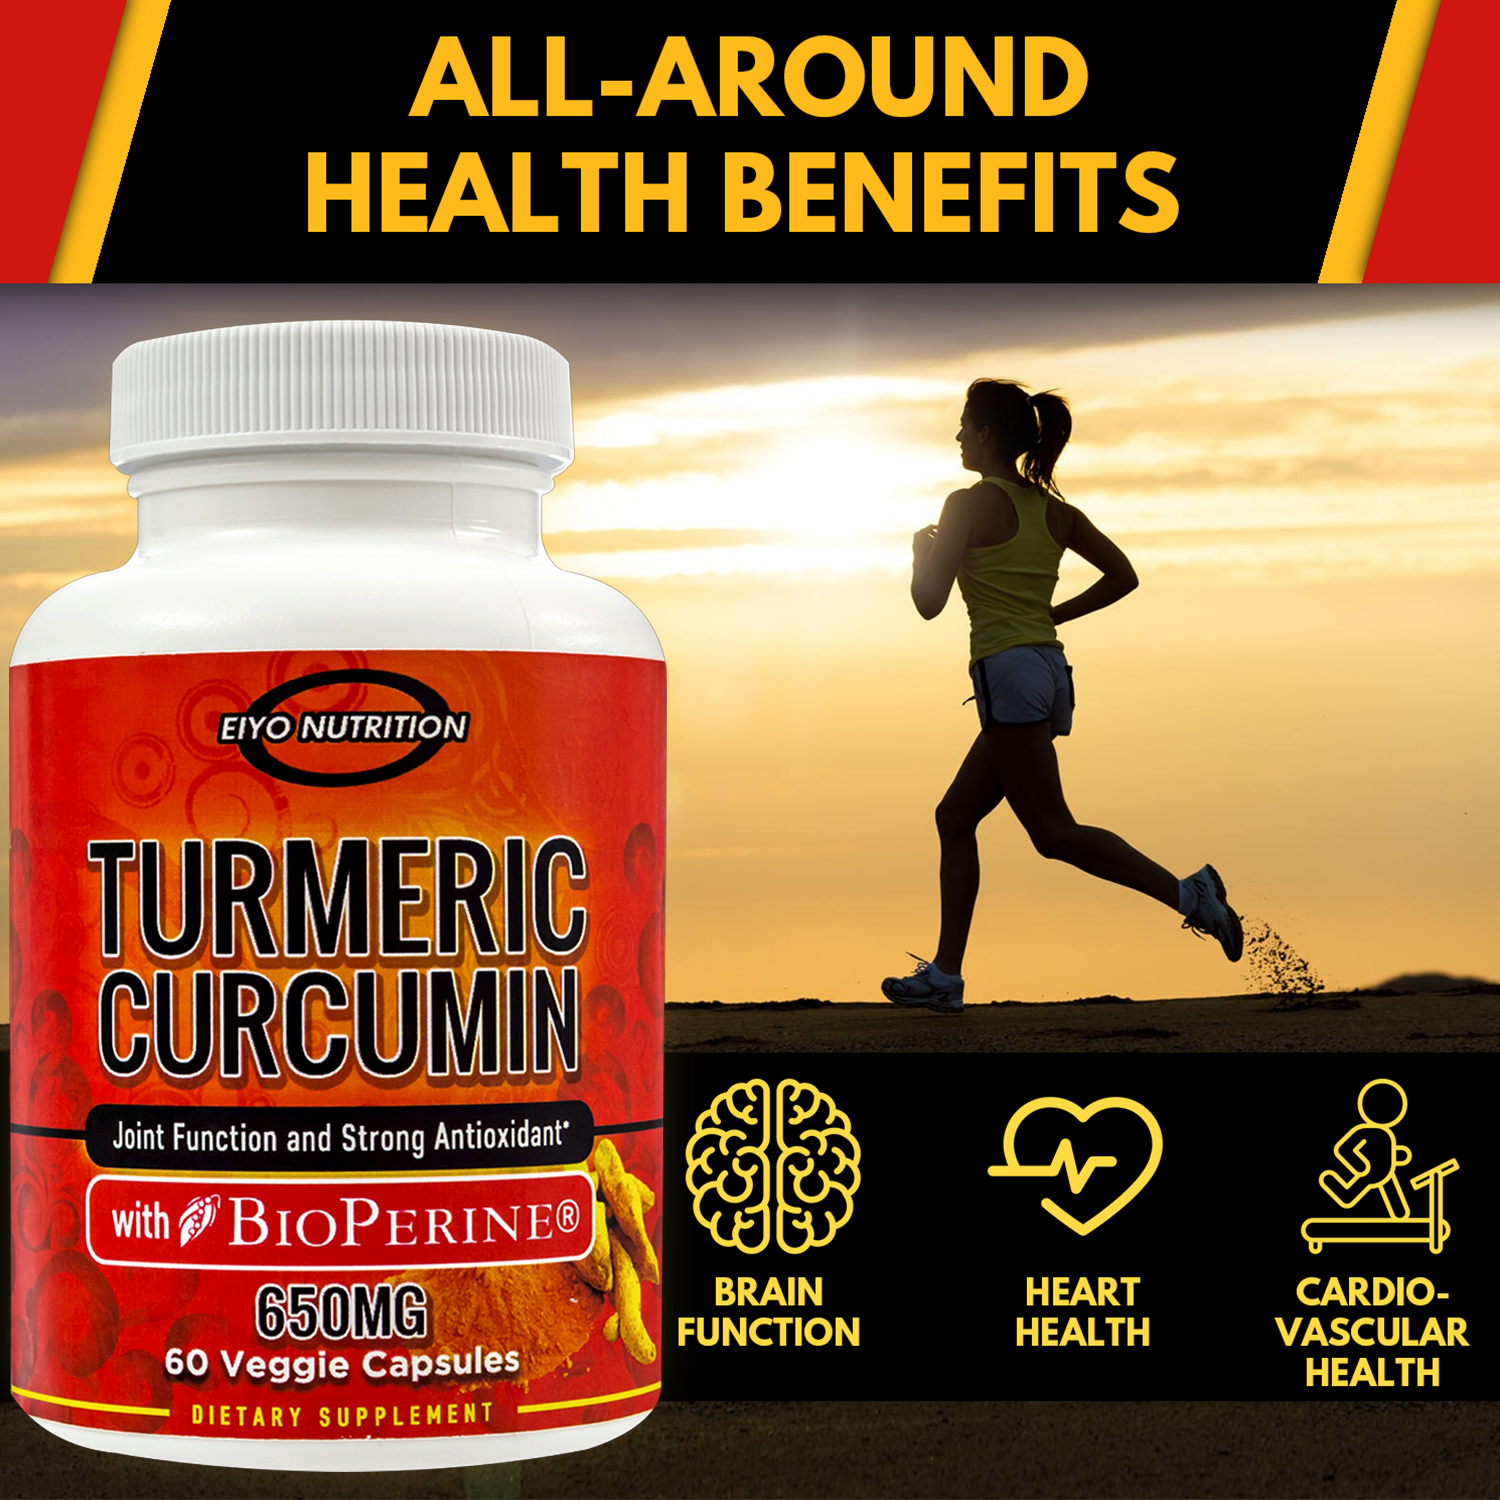 Turmeric is an excellent anti-inflammatory! Let Eiyo